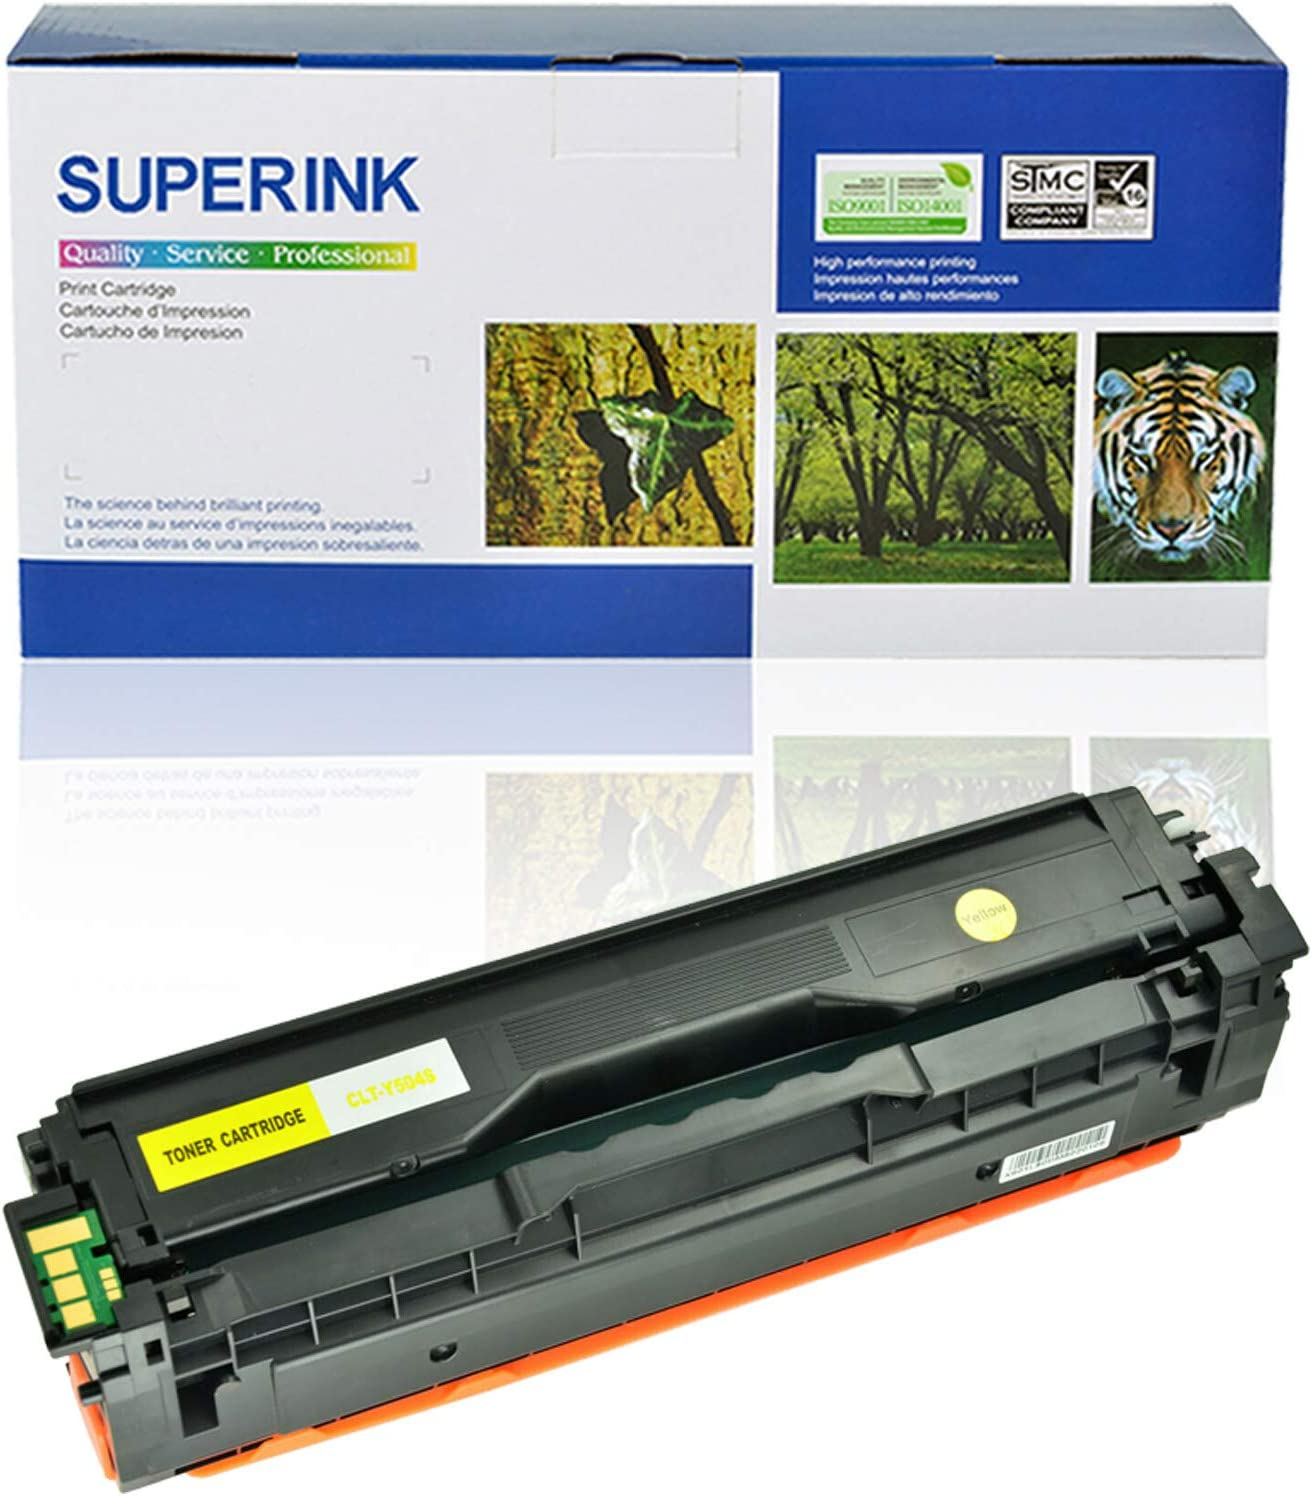 1 Yellow SuperInk High Yield Replacement Compatible Toner Cartridge for Samsung CLT-504S CLT-Y504S use in CLP-415N CLP-415NW CLX-4195 CLX-4195N CLX-4195FN CLX-4195FW Xpress SL-C1860FW SL-C1810W